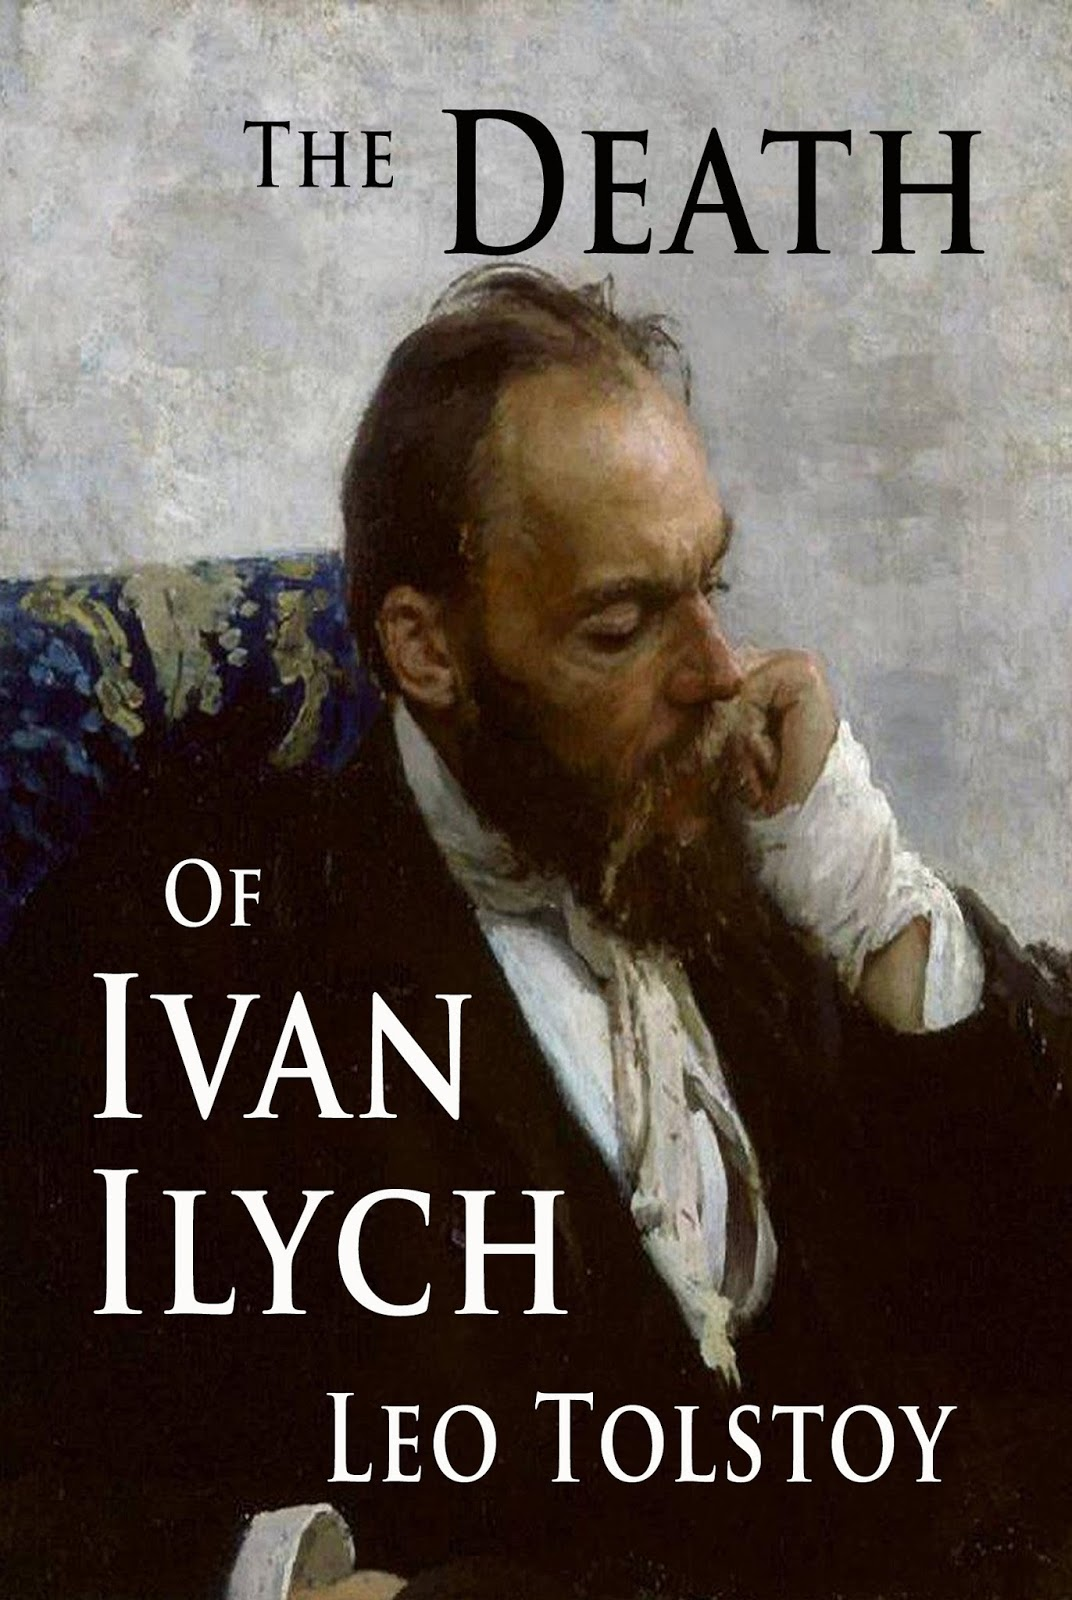 my world 2012 response to the death of ivan ilyich